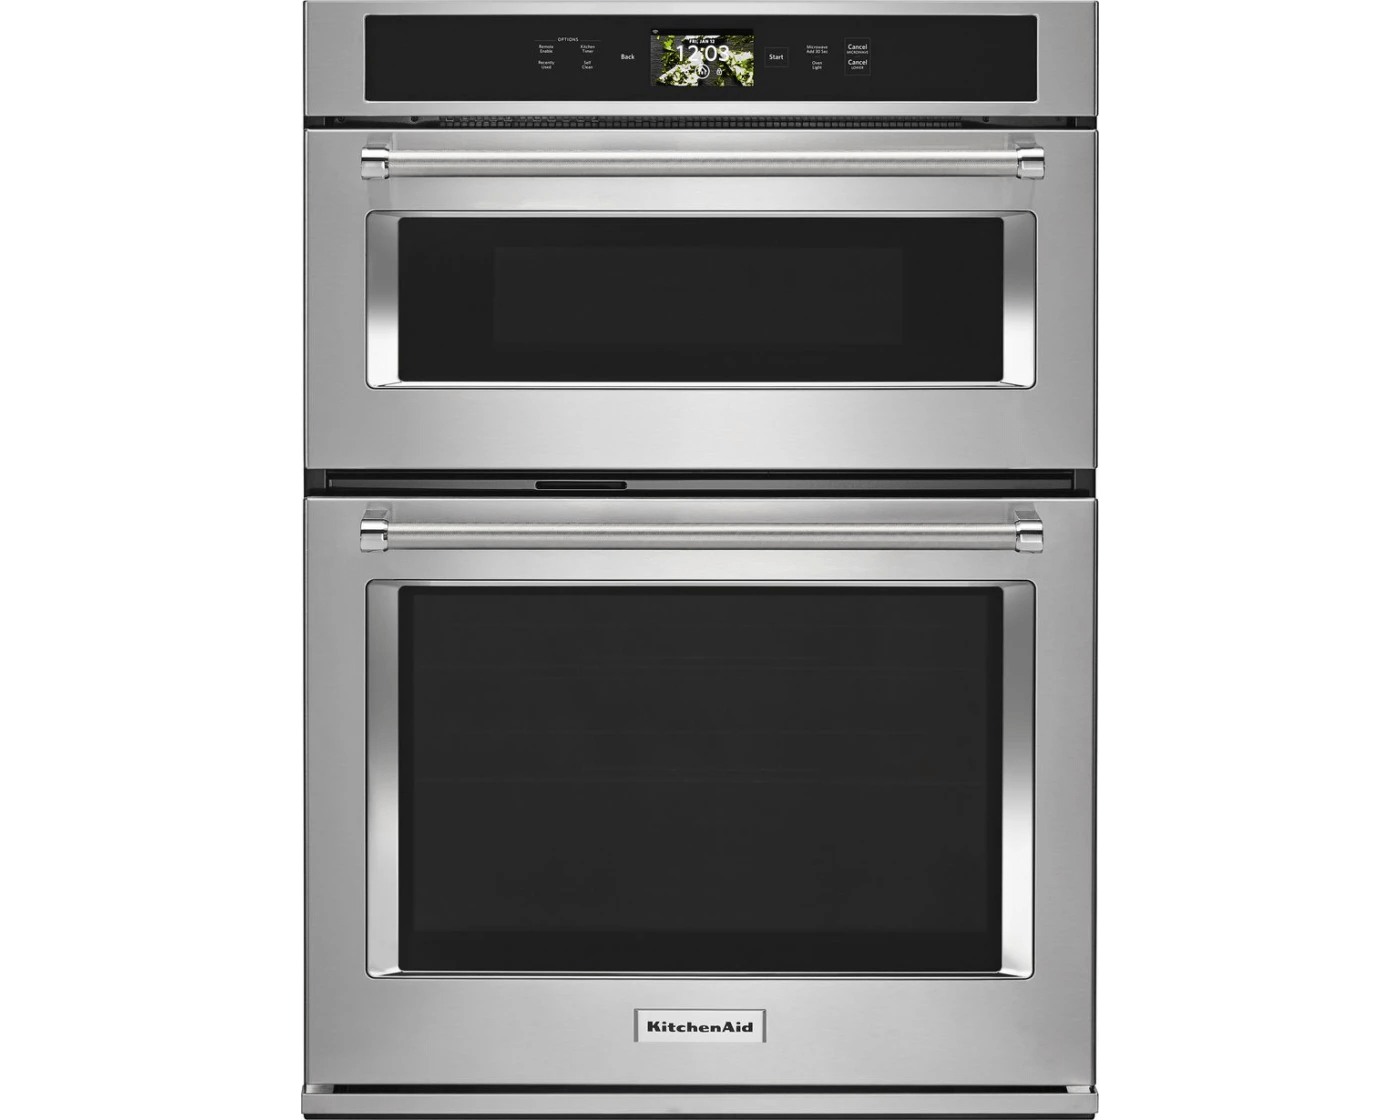 koce900hss by kitchenaid combination wall ovens goedekers com